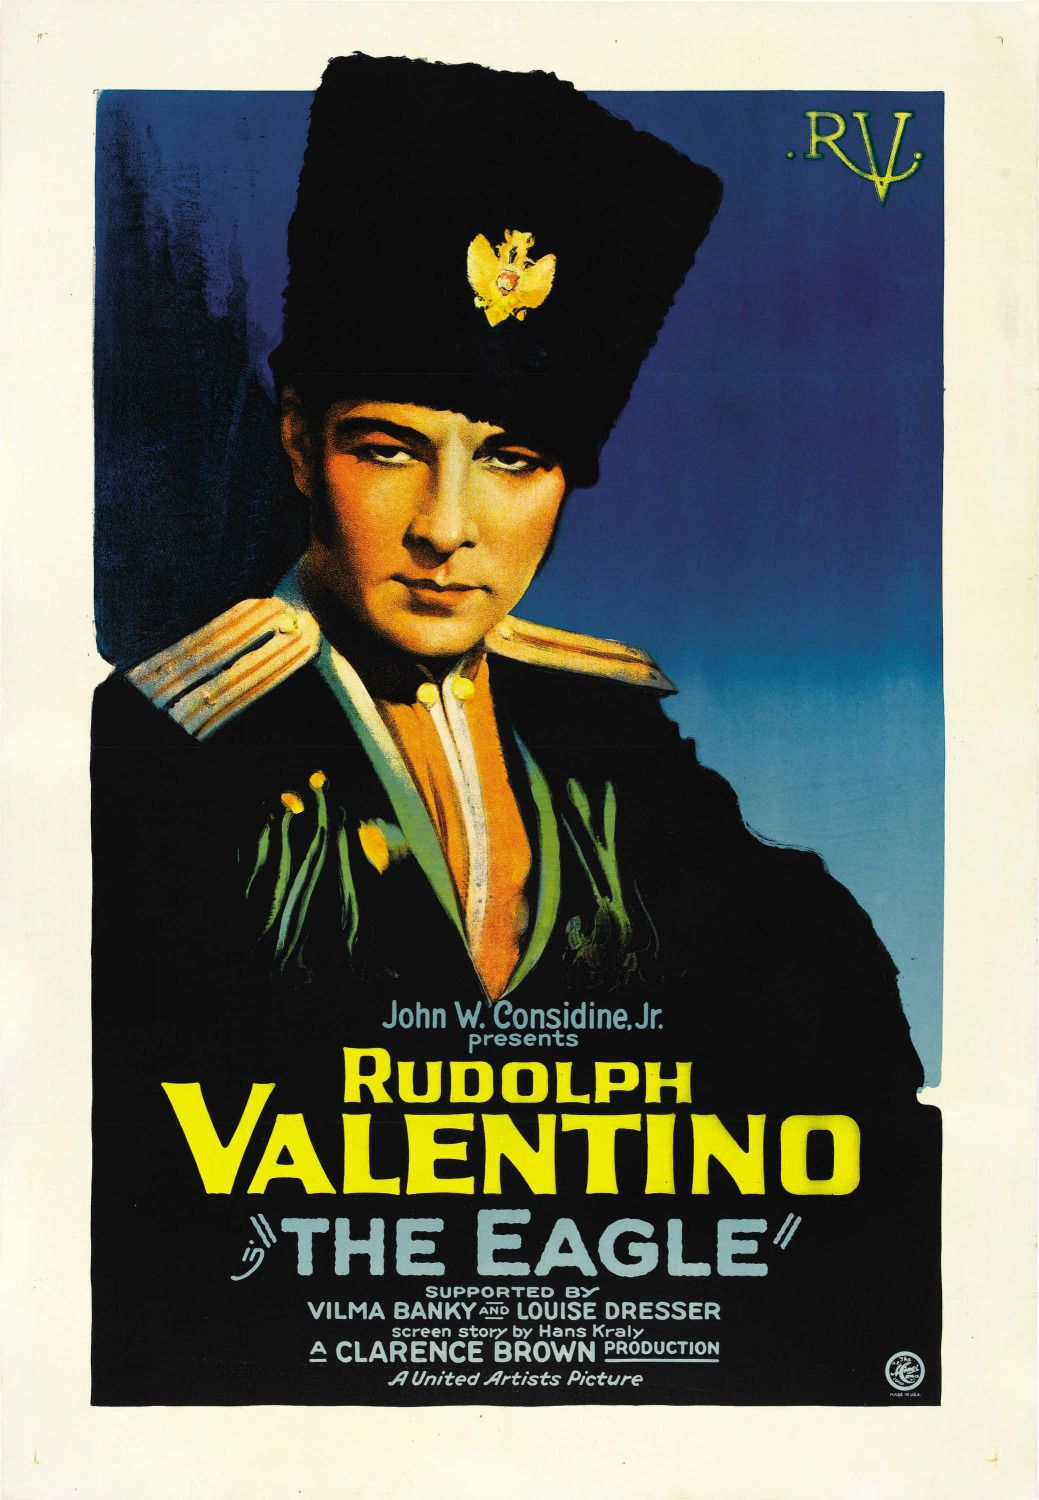 The Eagle 1925 - classic cult old film poster - Rudolph (Rodolfo) Valentino